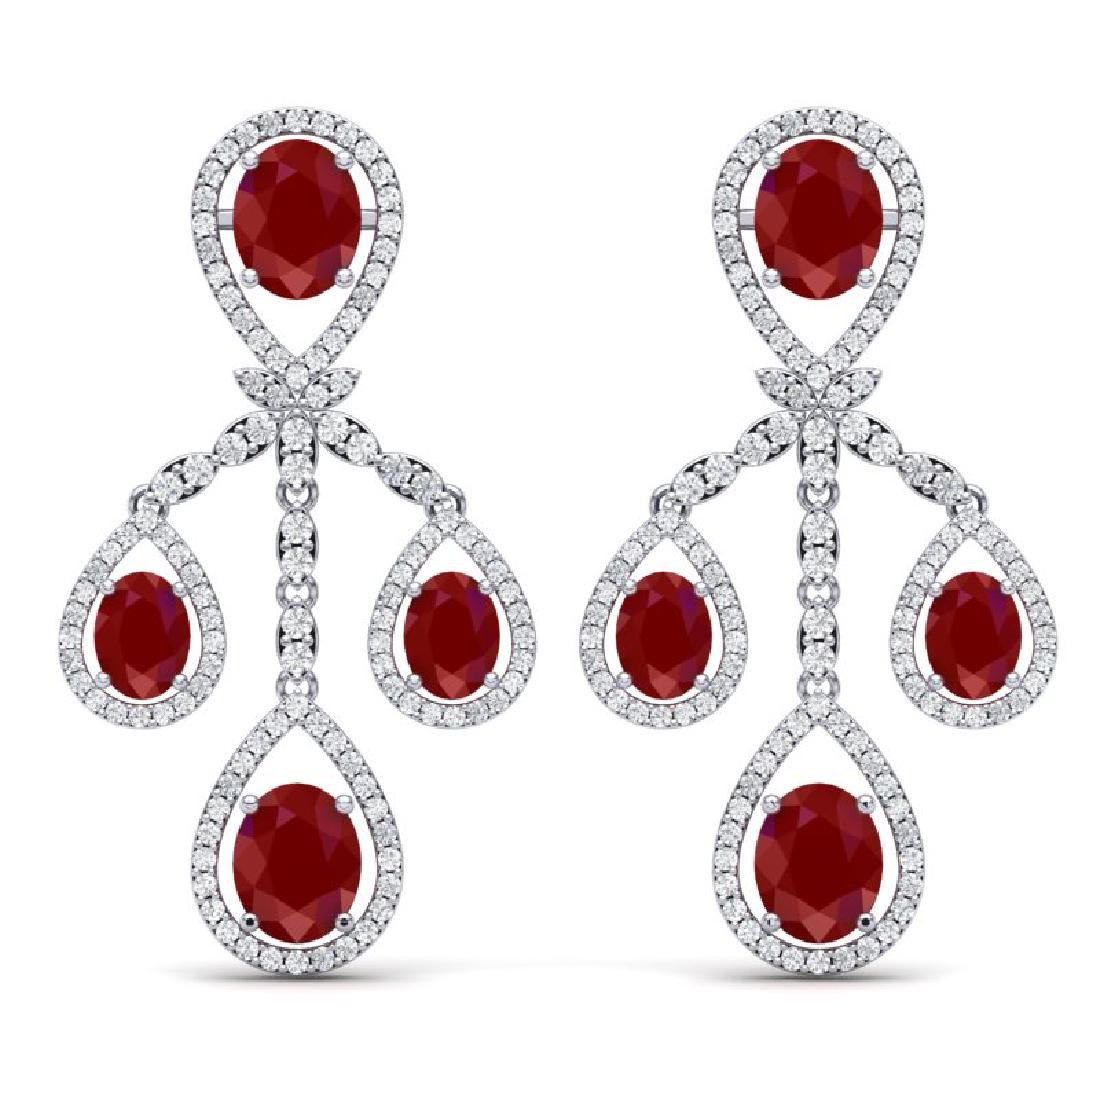 25.08 CTW Royalty Designer Ruby & VS Diamond Earrings